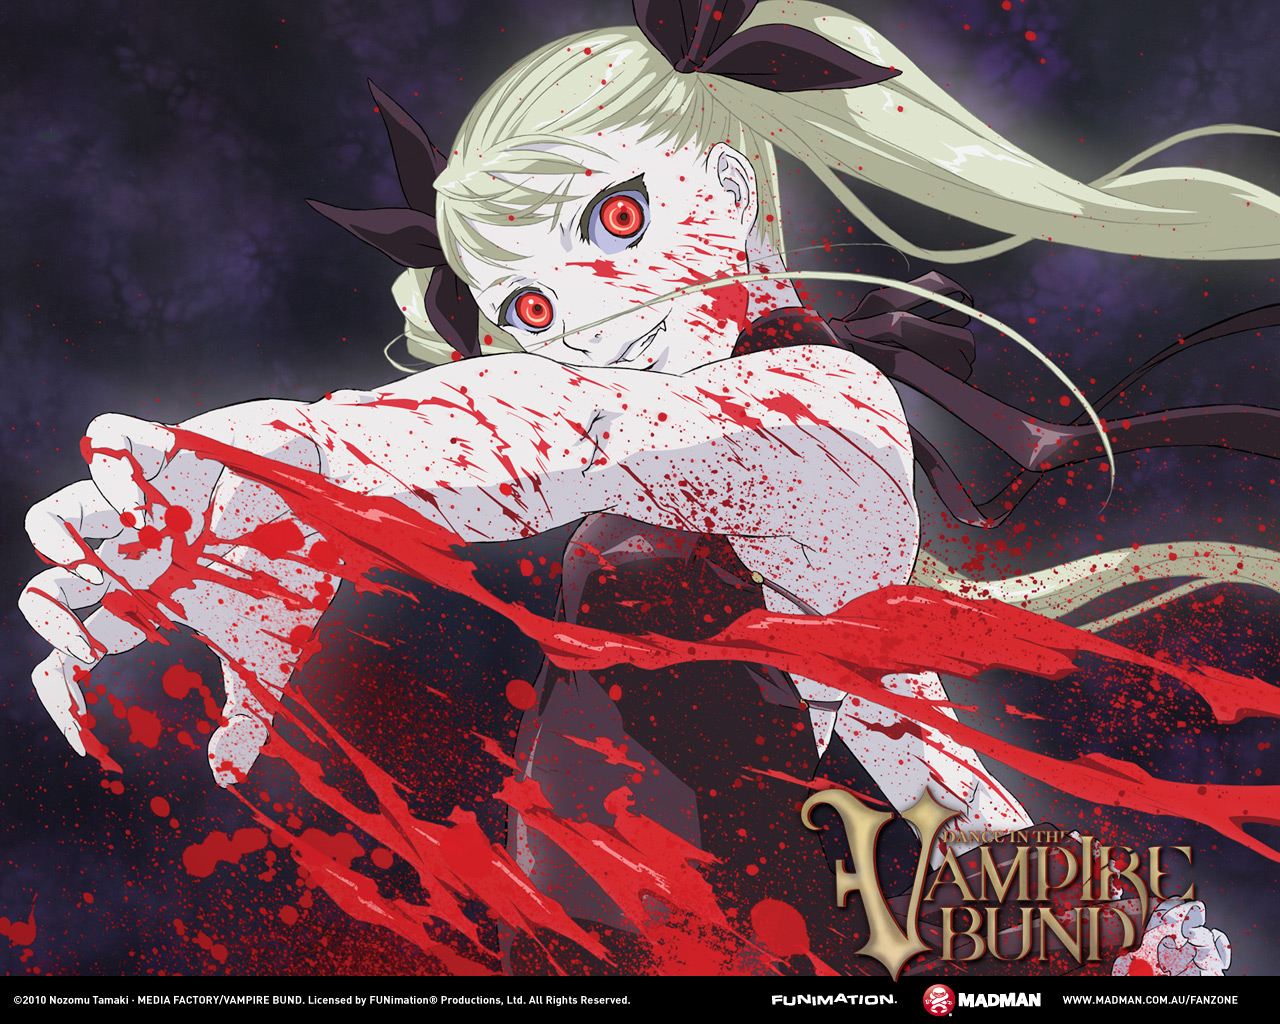 Dance In The Vampire Bund Backgrounds, Compatible - PC, Mobile, Gadgets| 1280x1024 px